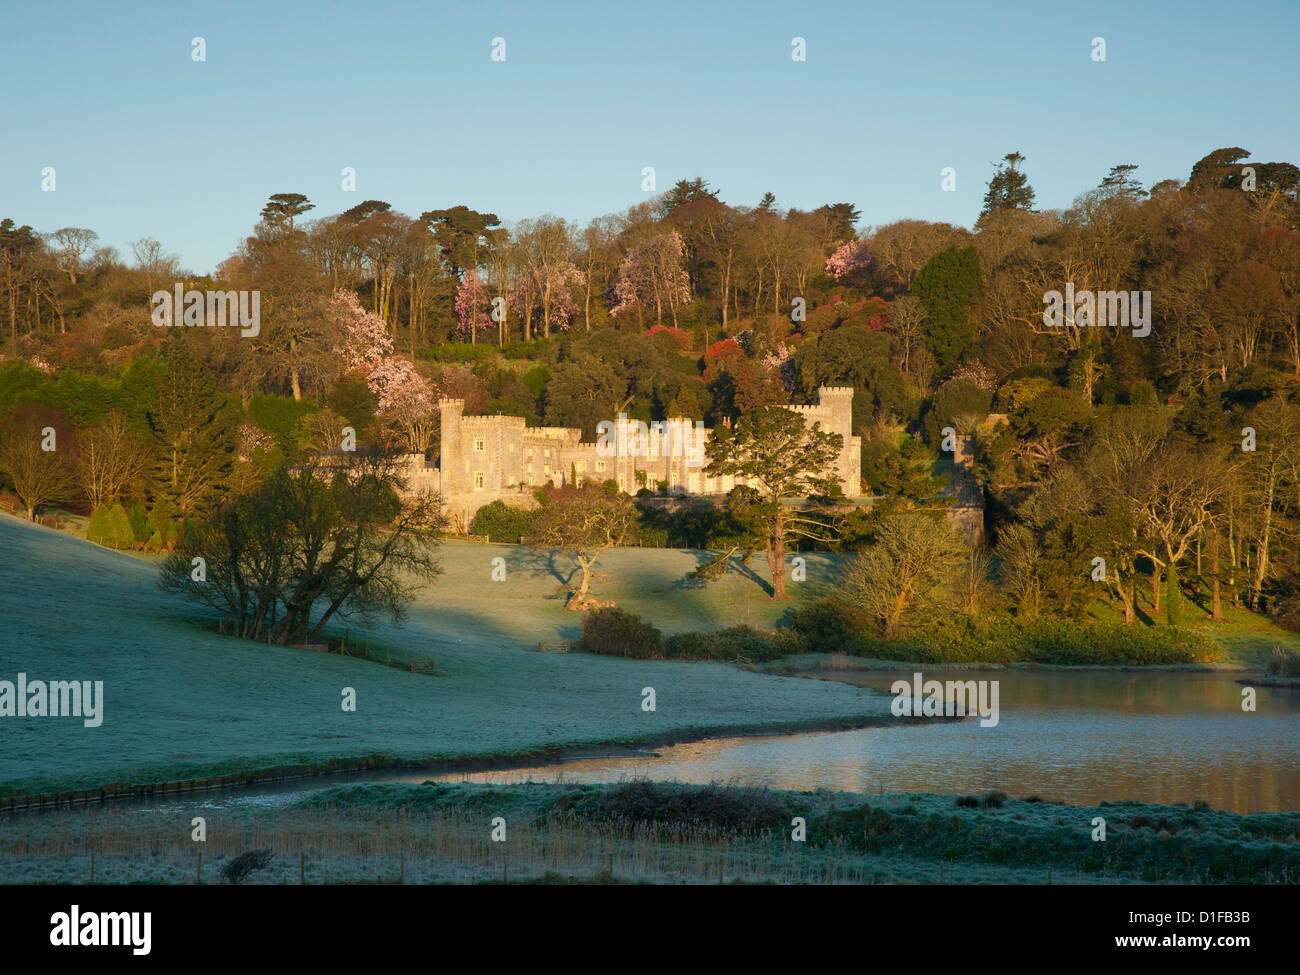 Sunrise at Caerhays Castle with magnolias behind the castle and sun reflected in the lake, St. Austell, Cornwall, - Stock Image